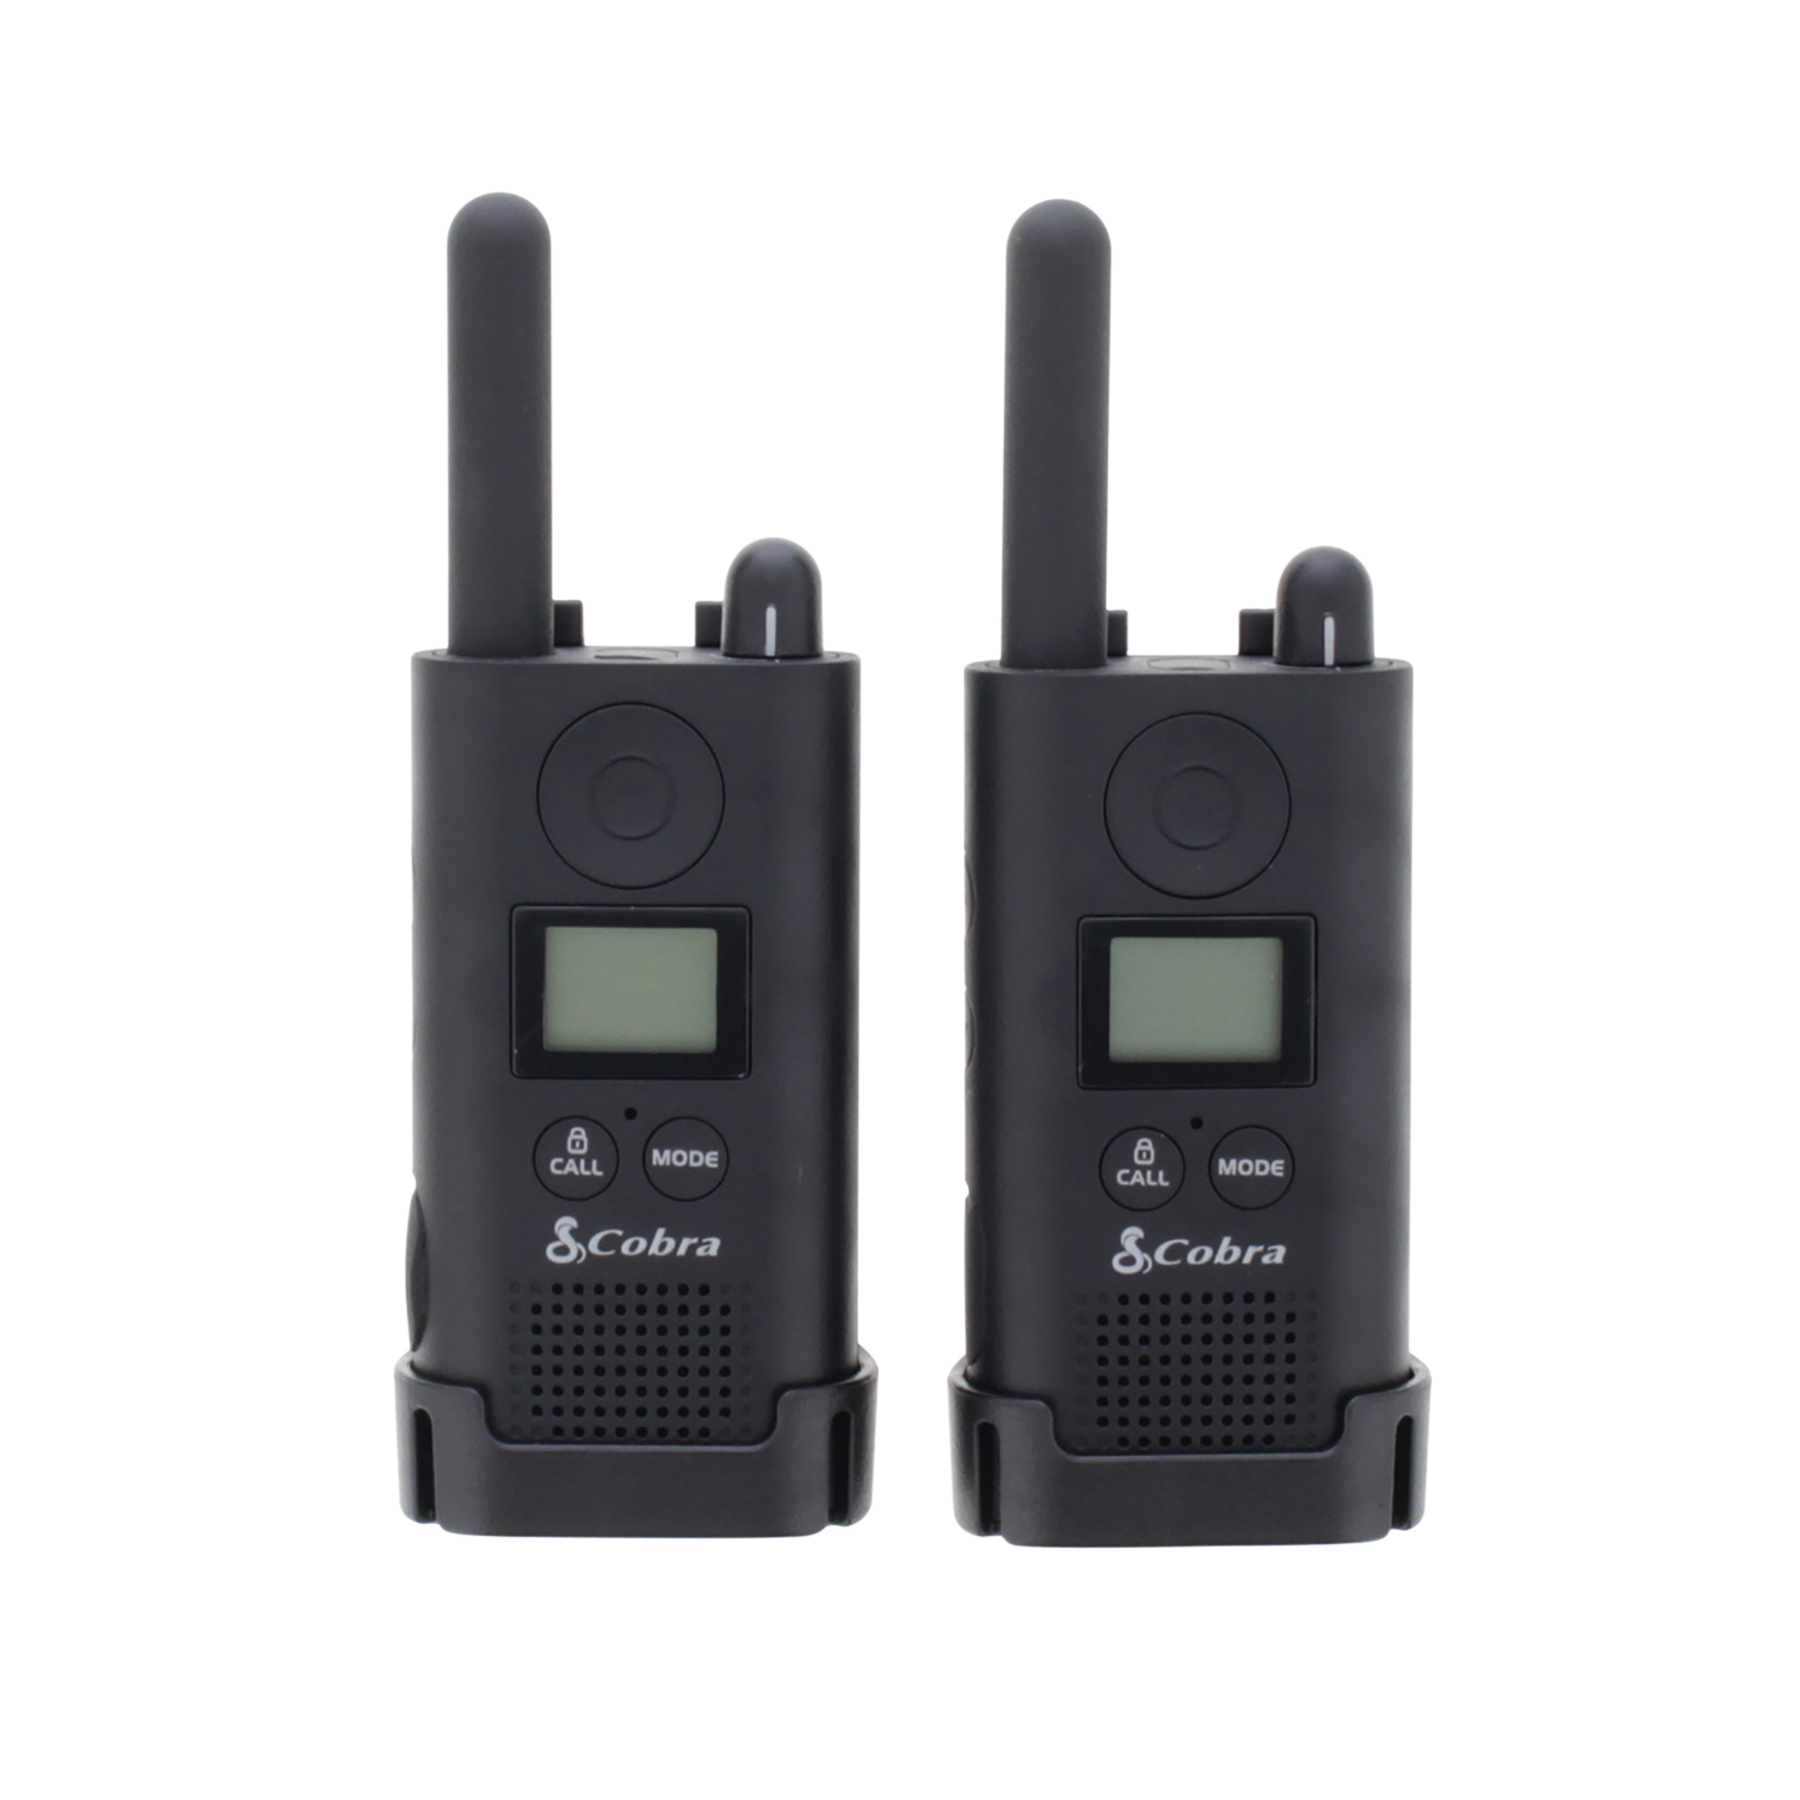 Radio frequency transmitters or receivers Cobra PU 500 Pro Business Two Way Radios 16 Preset Channels Range 8km Ref PU500B+SV-01 Pair